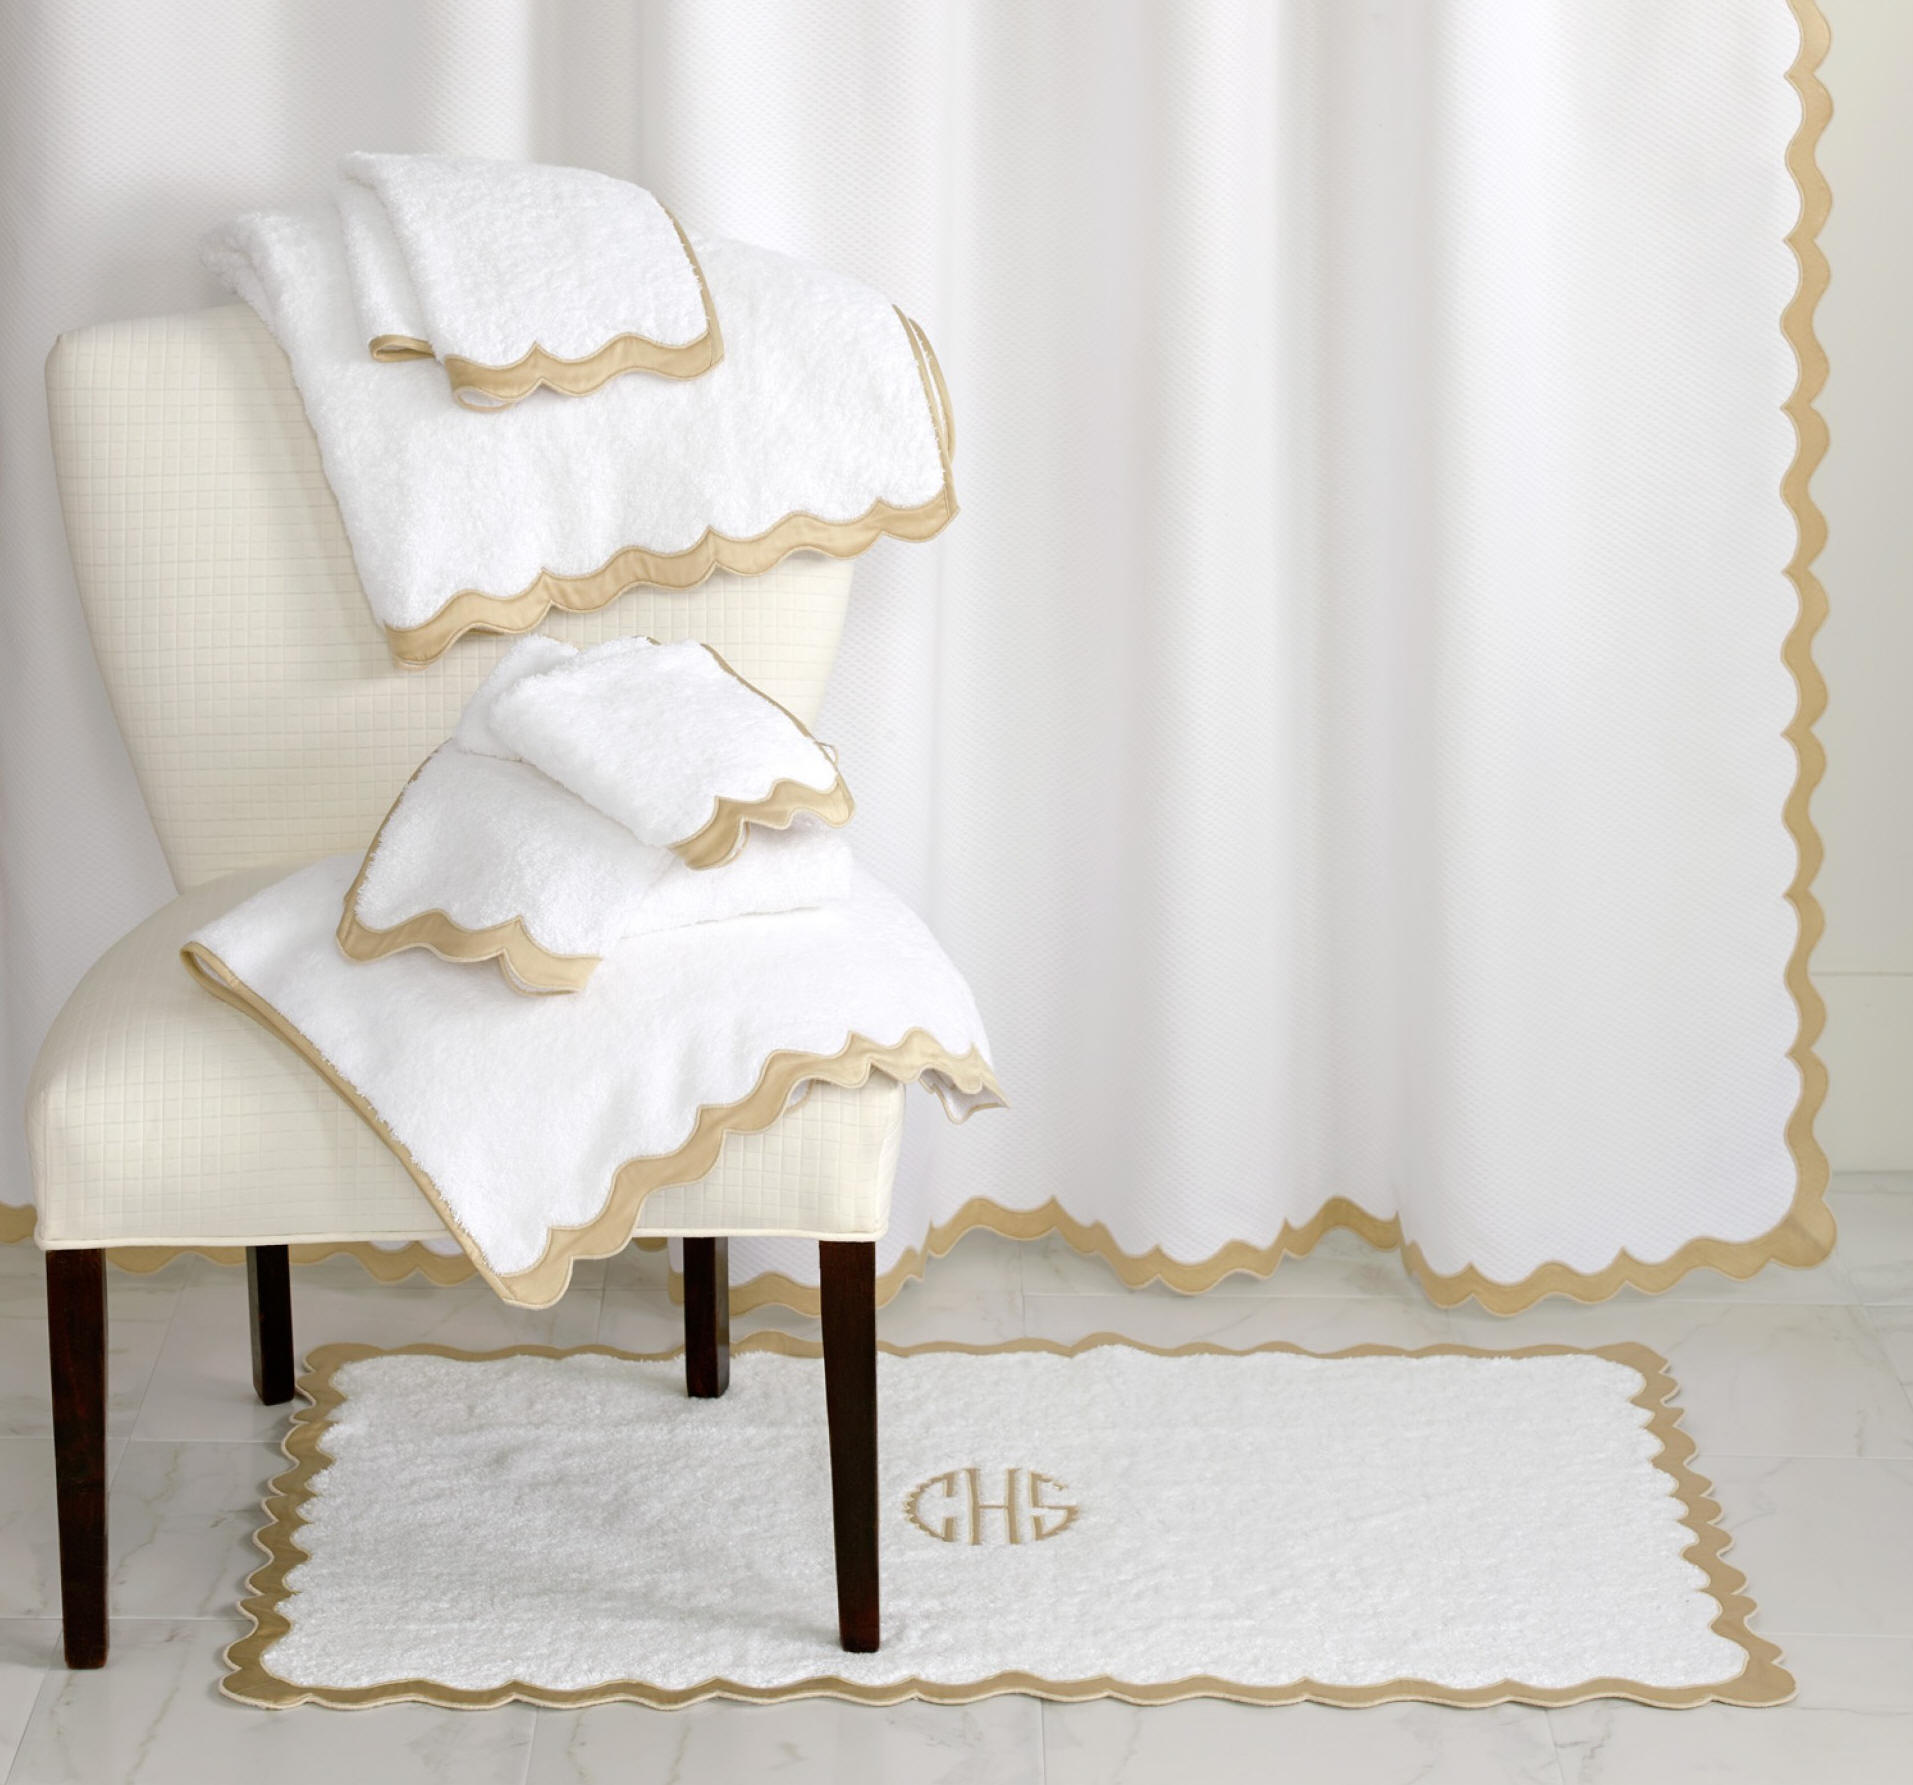 Luxury Egyptian cotton bath towels, bath sheets, and shower curtains finished with an applique scallop border and custom monogram.